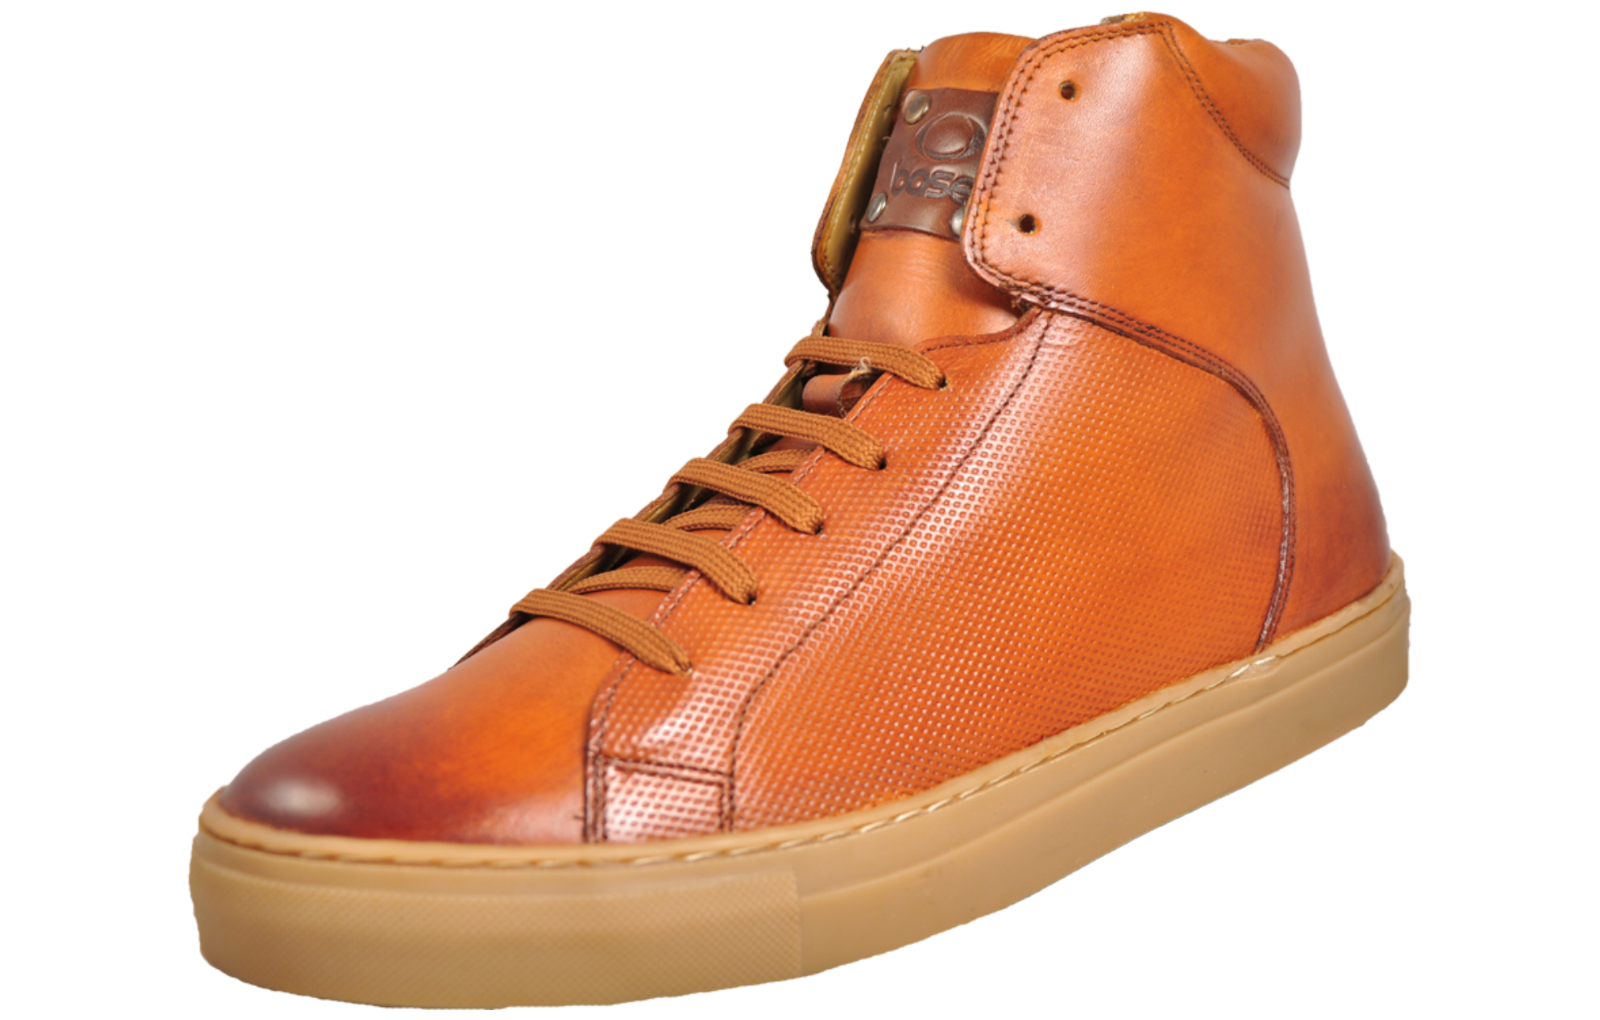 Base Lonodn Jarrett Leather Mens - BL180372